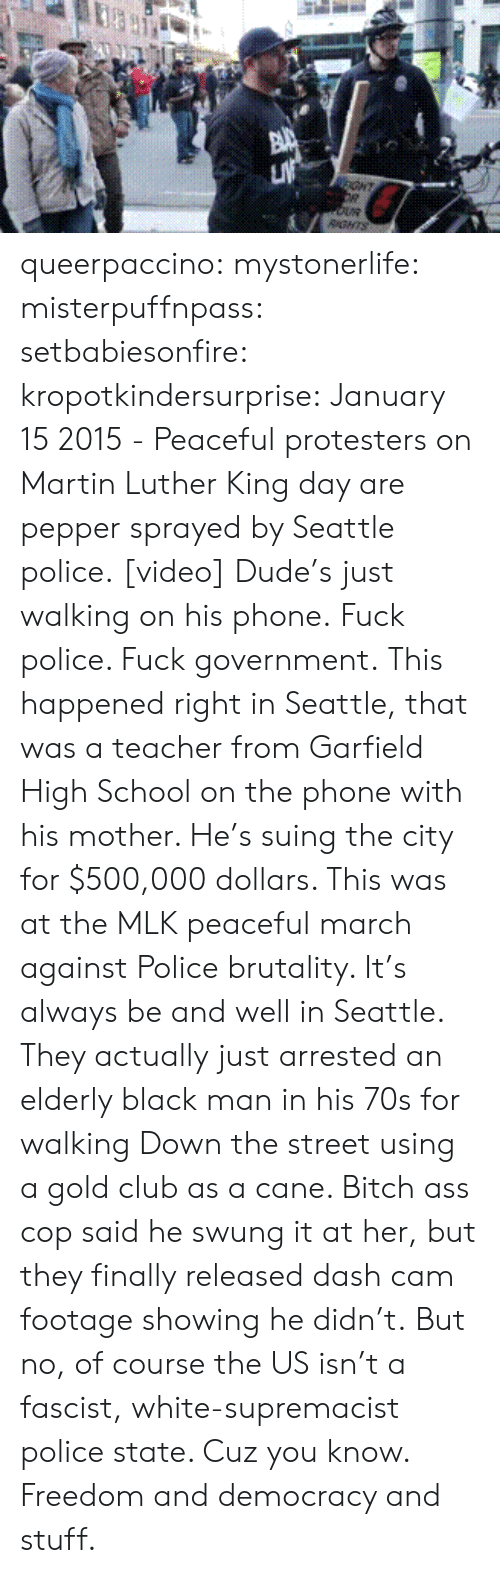 spray: GHT  RGNTS queerpaccino: mystonerlife:  misterpuffnpass:  setbabiesonfire:  kropotkindersurprise: January 15 2015 - Peaceful protesters on Martin Luther King day are pepper sprayed by Seattle police. [video] Dude's just walking on his phone.  Fuck police. Fuck government.  This happened right in Seattle, that was a teacher from Garfield High School on the phone with his mother. He's suing the city for $500,000 dollars. This was at the MLK peaceful march against Police brutality. It's always be and well in Seattle. They actually just arrested an elderly black man in his 70s for walking Down the street using a gold club as a cane. Bitch ass cop said he swung it at her, but they finally released dash cam footage showing he didn't.  But no, of course the US isn't a fascist, white-supremacist police state. Cuz you know. Freedom and democracy and stuff.